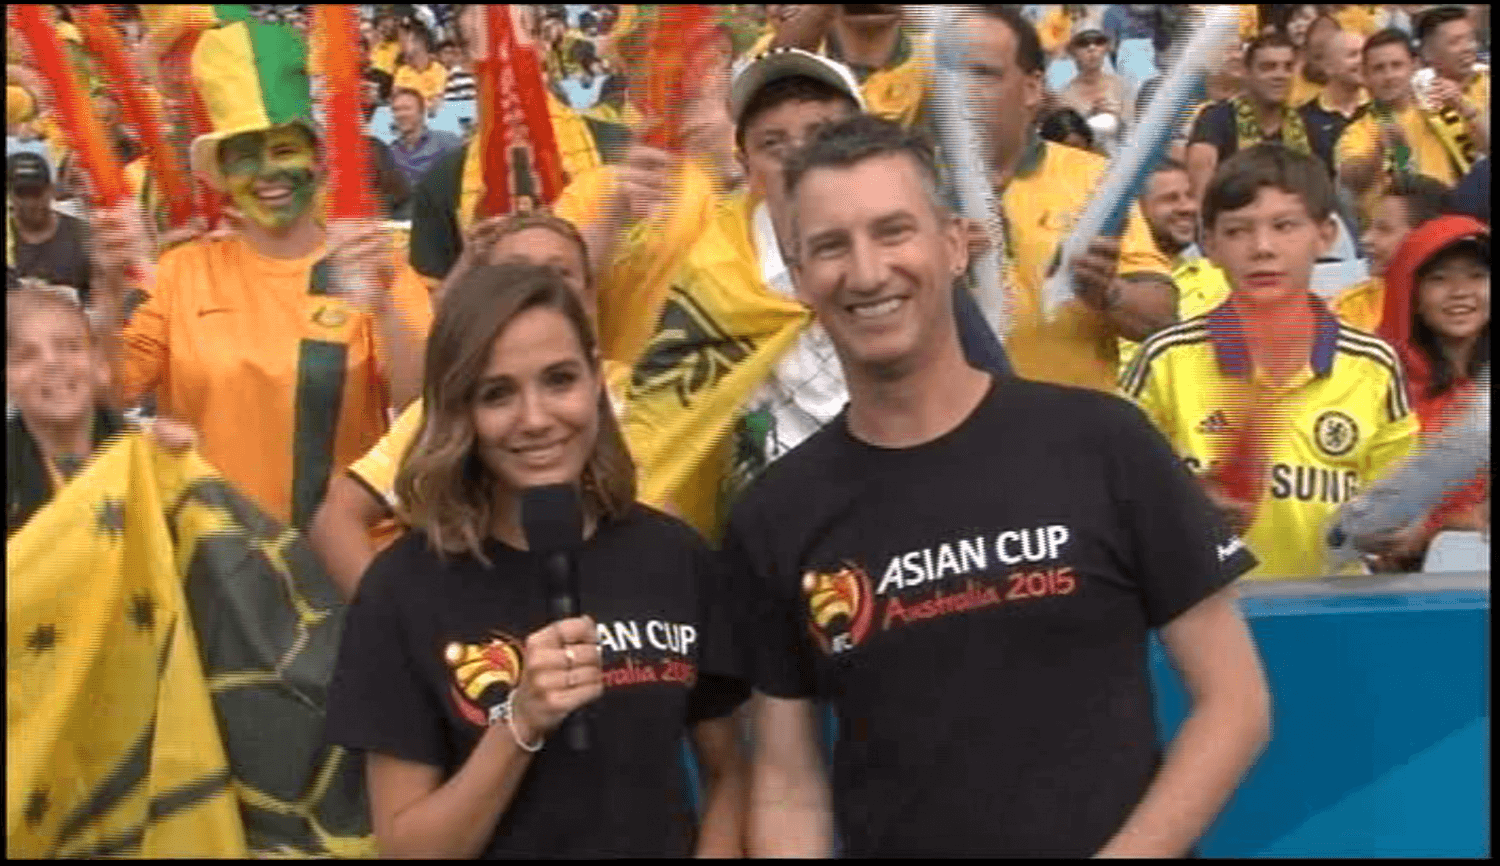 On screen presenter 2015 - Asian Cup Final in Sydney